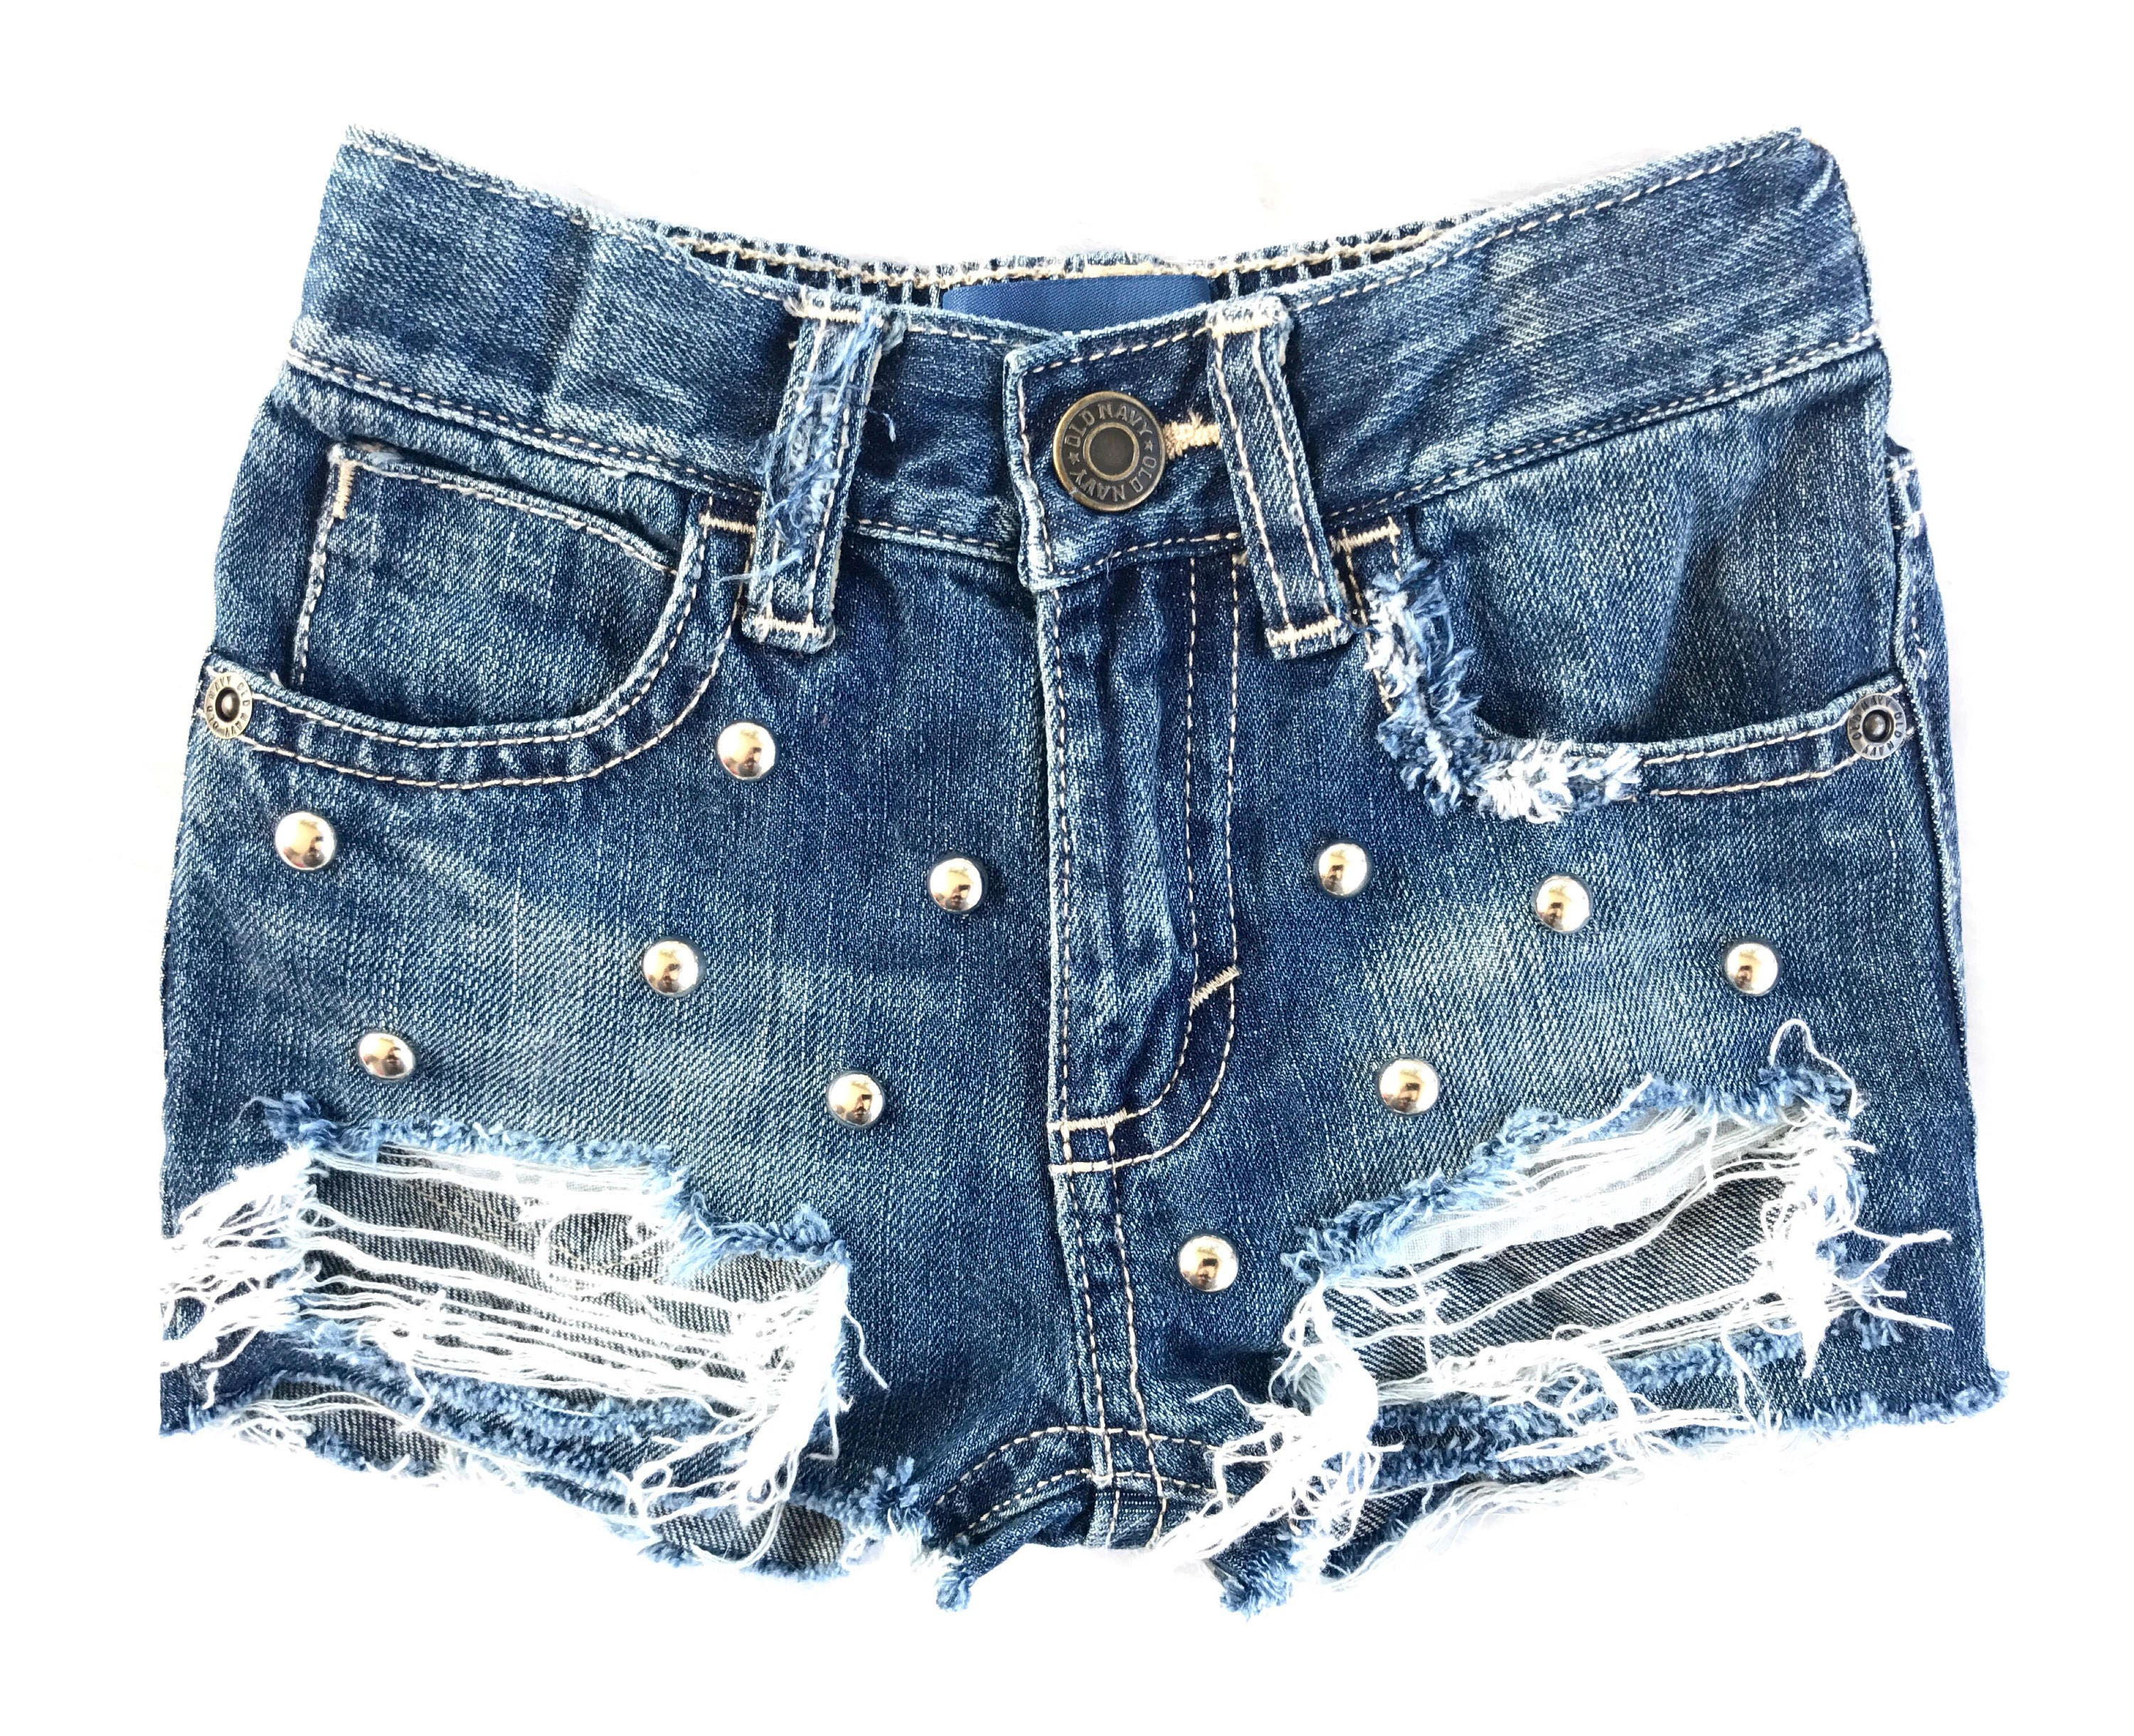 270c10d029 BETTIES baby toddler girl distressed destroyed deconstructed ripped cut off  studded denim jeans shorts. gallery photo ...